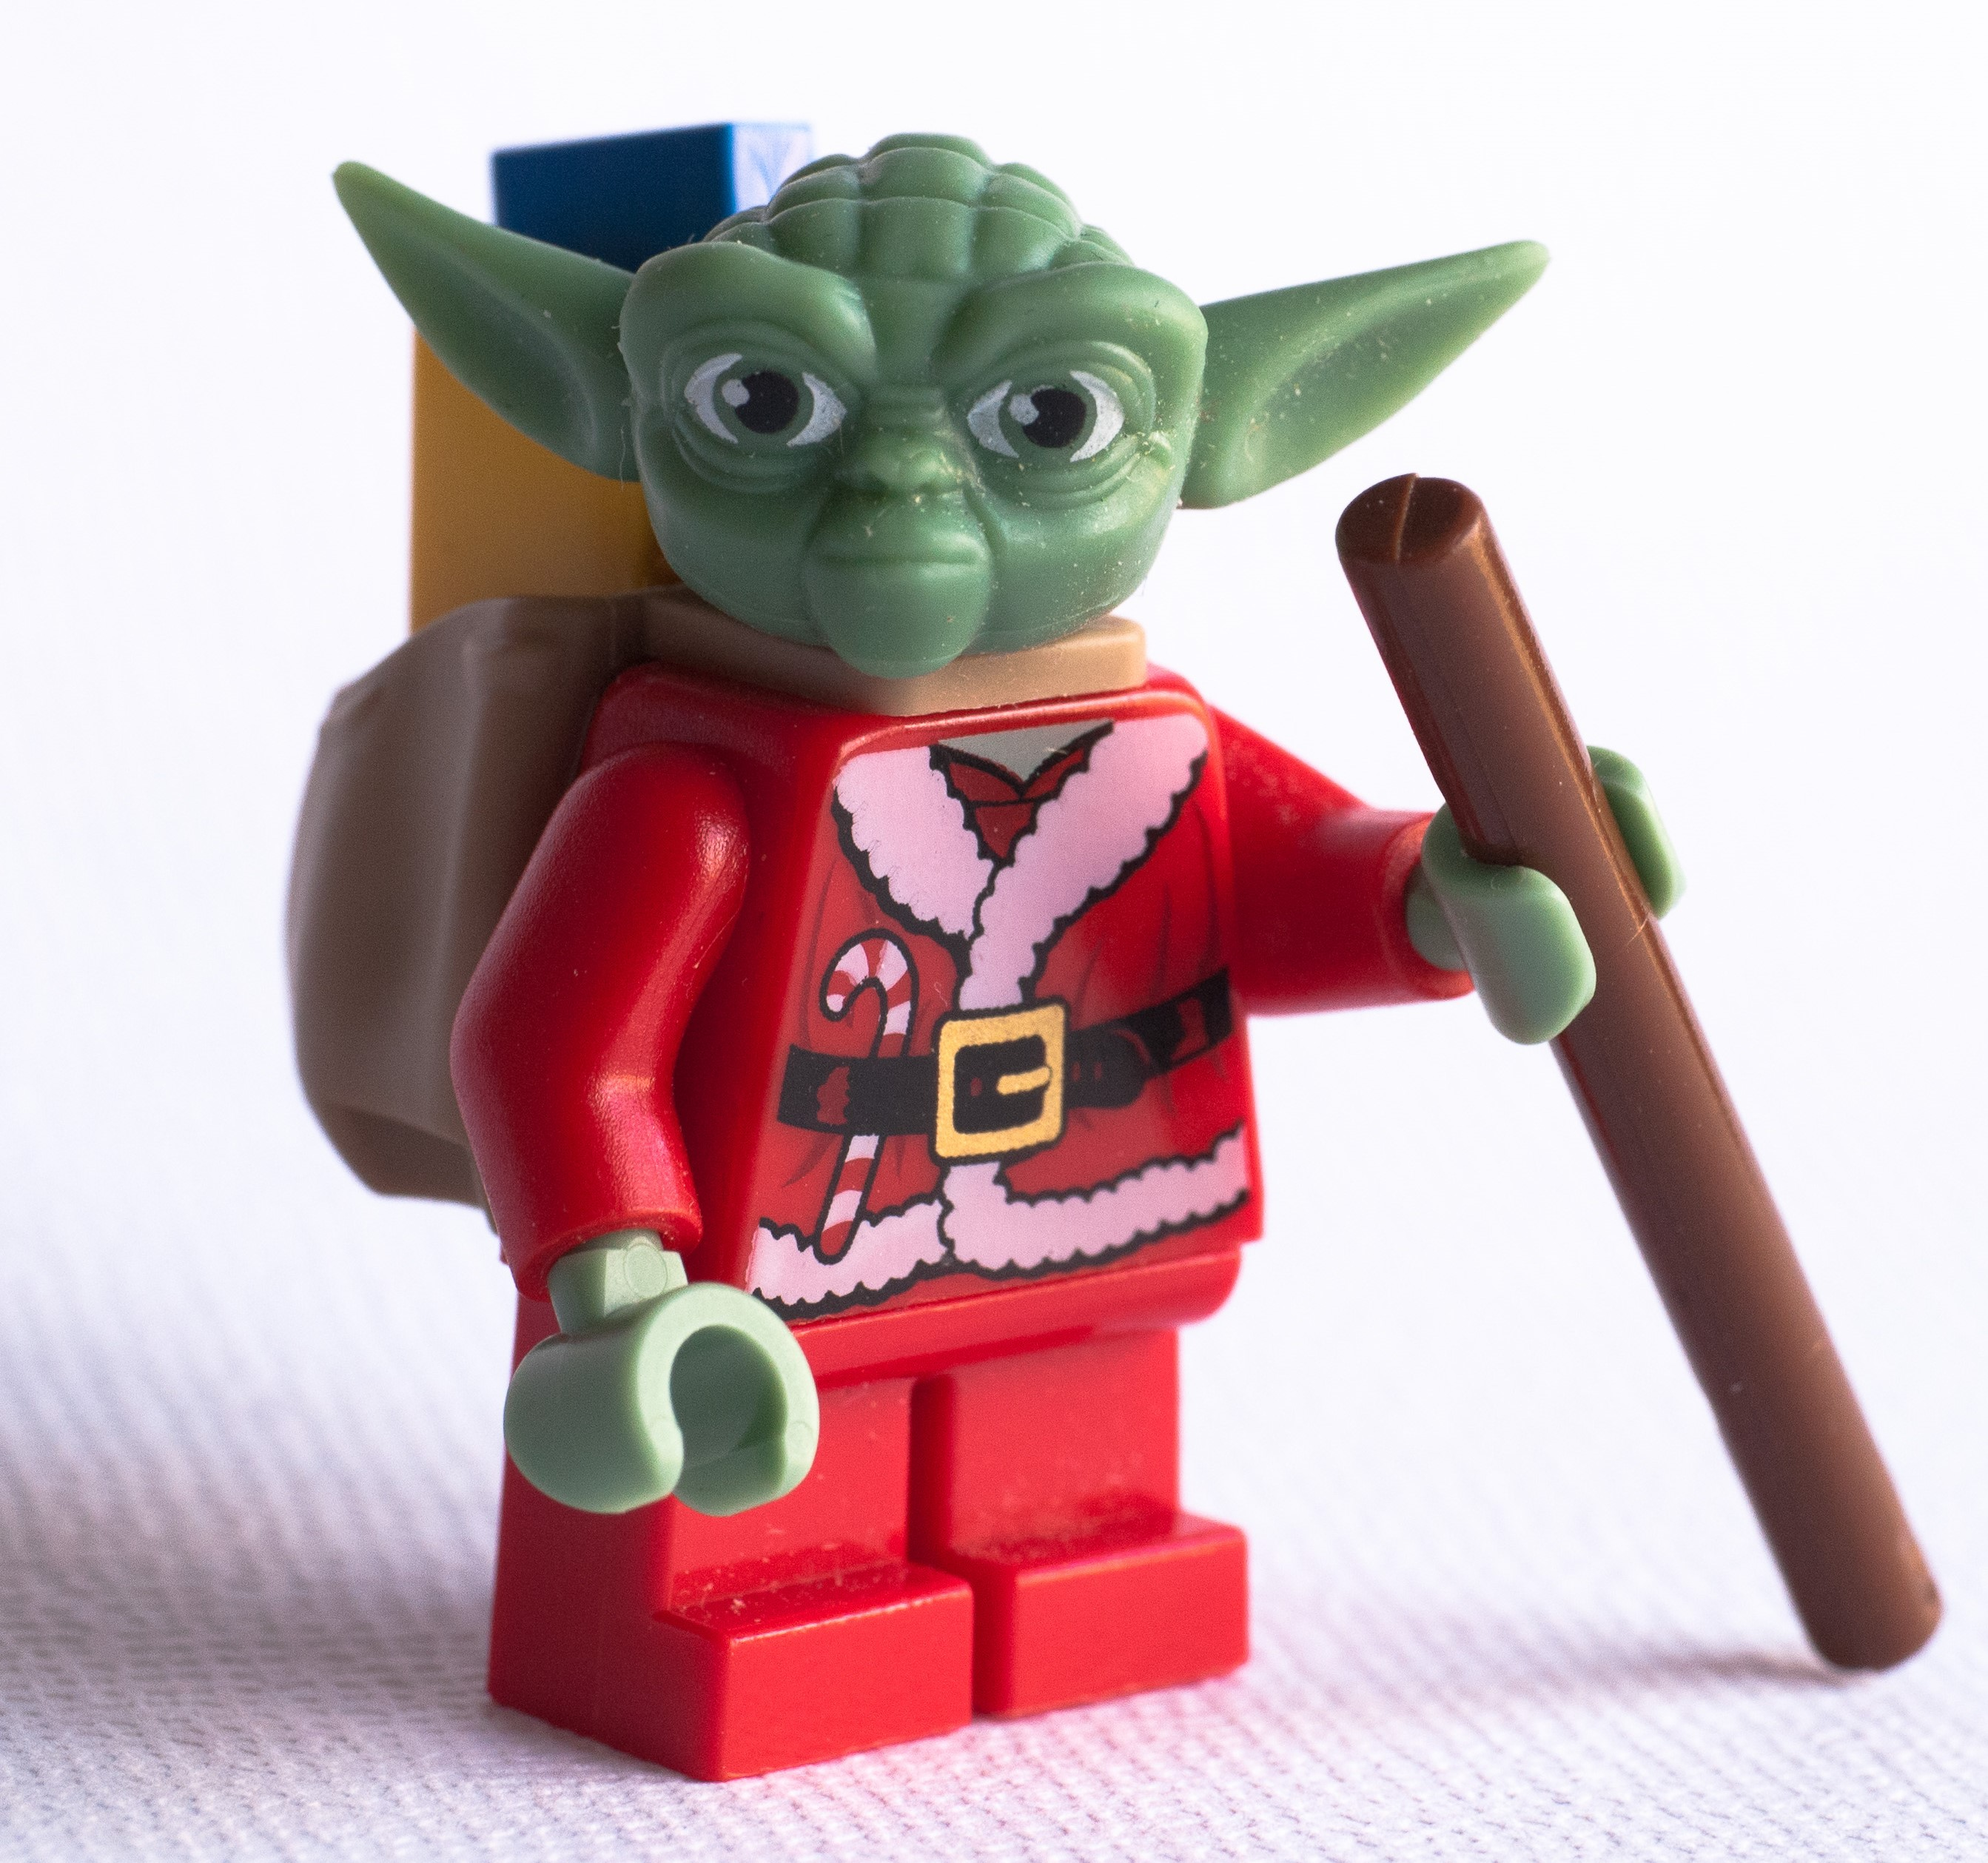 lego-minifig-santa-yoda-advent-calendar-star-wars-2011